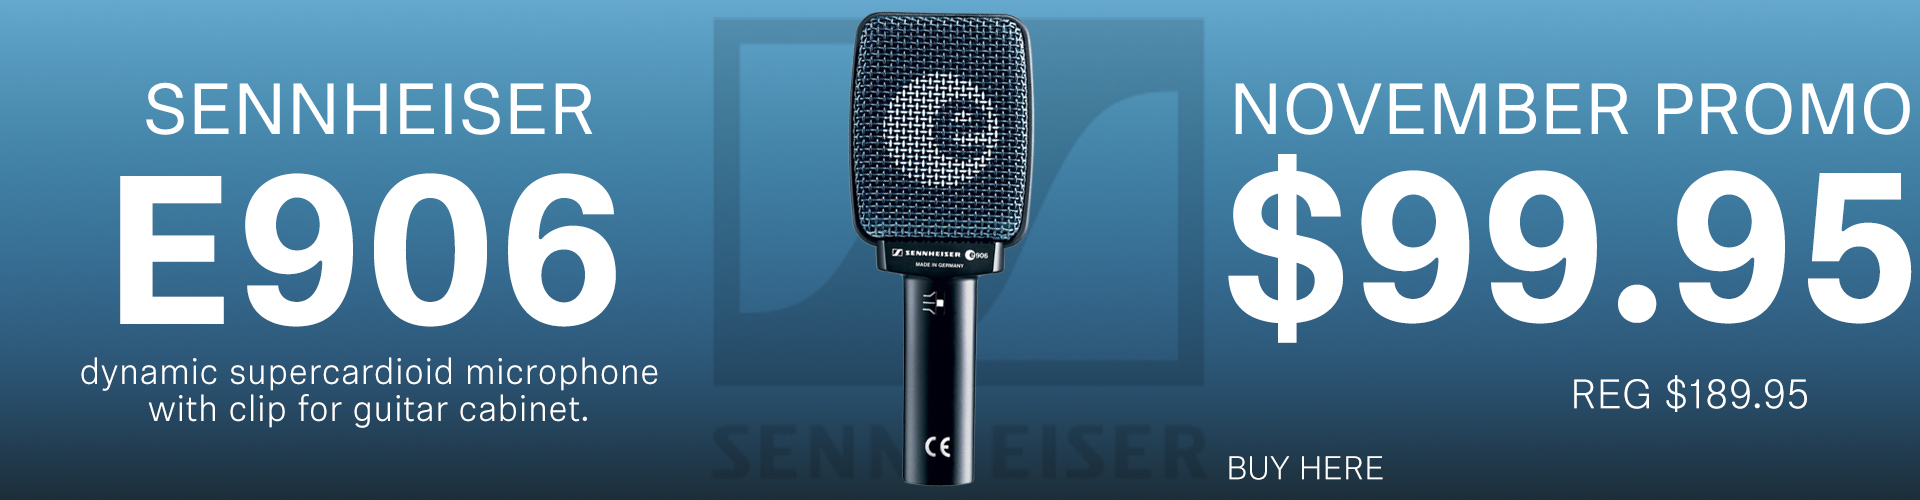 Sennheiser's Mic of the Month - e906 Dynamic Supercardioid Microphone w/ Clip for Cabinets